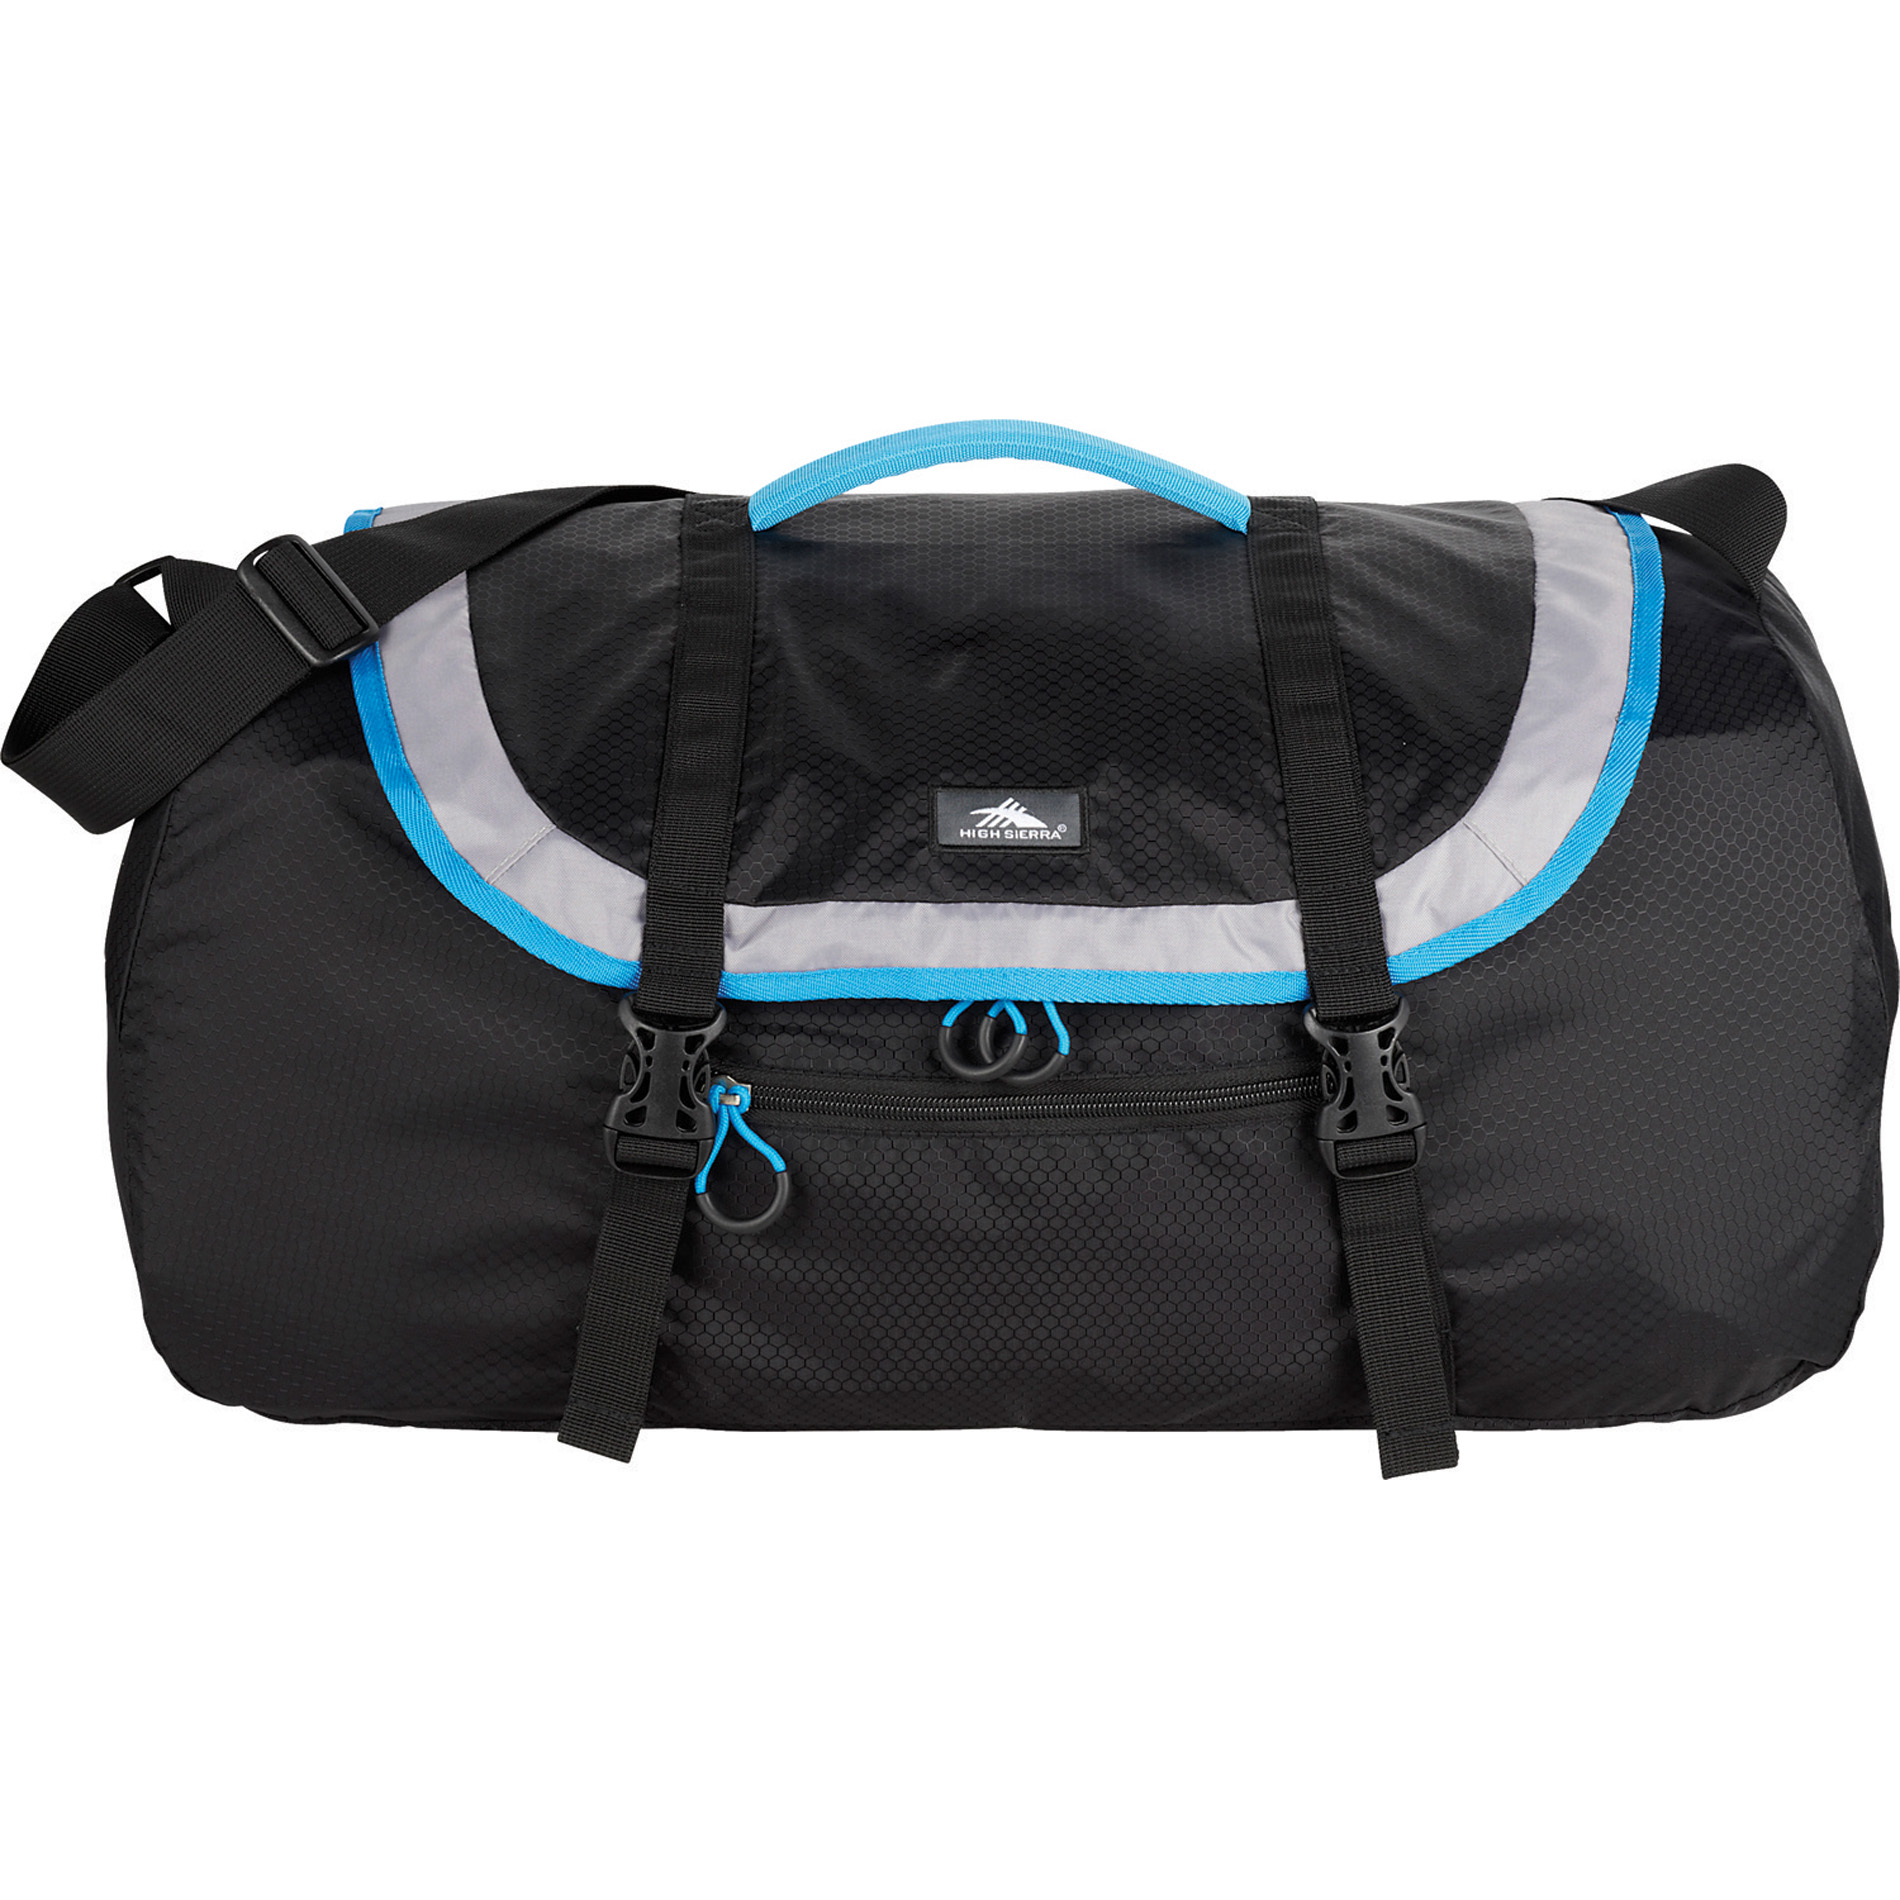 "High Sierra 8052-26 - 40L Pack-n-Go 23"" Duffel Bag"